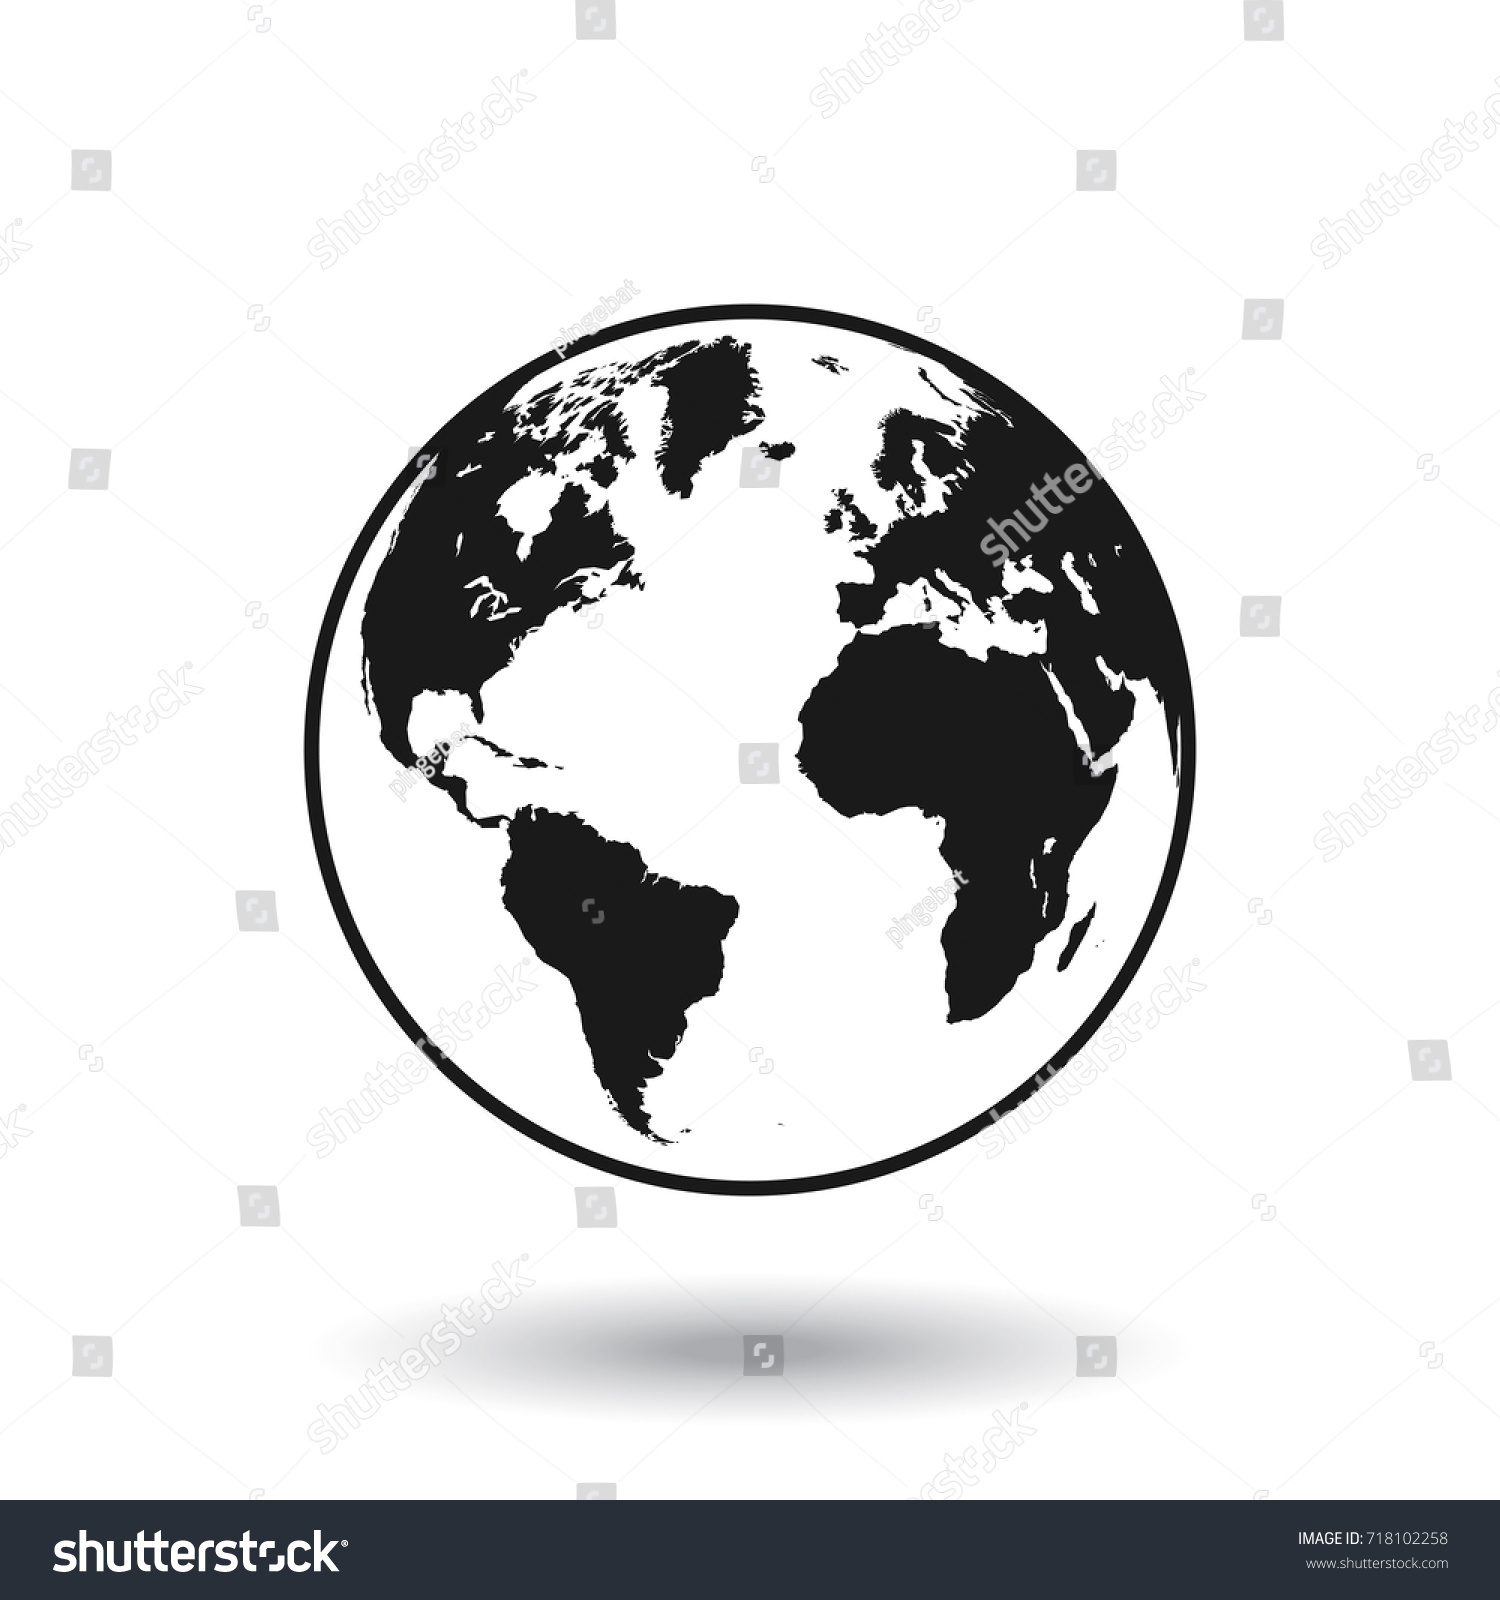 Detailed black white world map mapped vectores en stock 718102258 detailed black and white world map mapped on a globe isolated on white background gumiabroncs Gallery